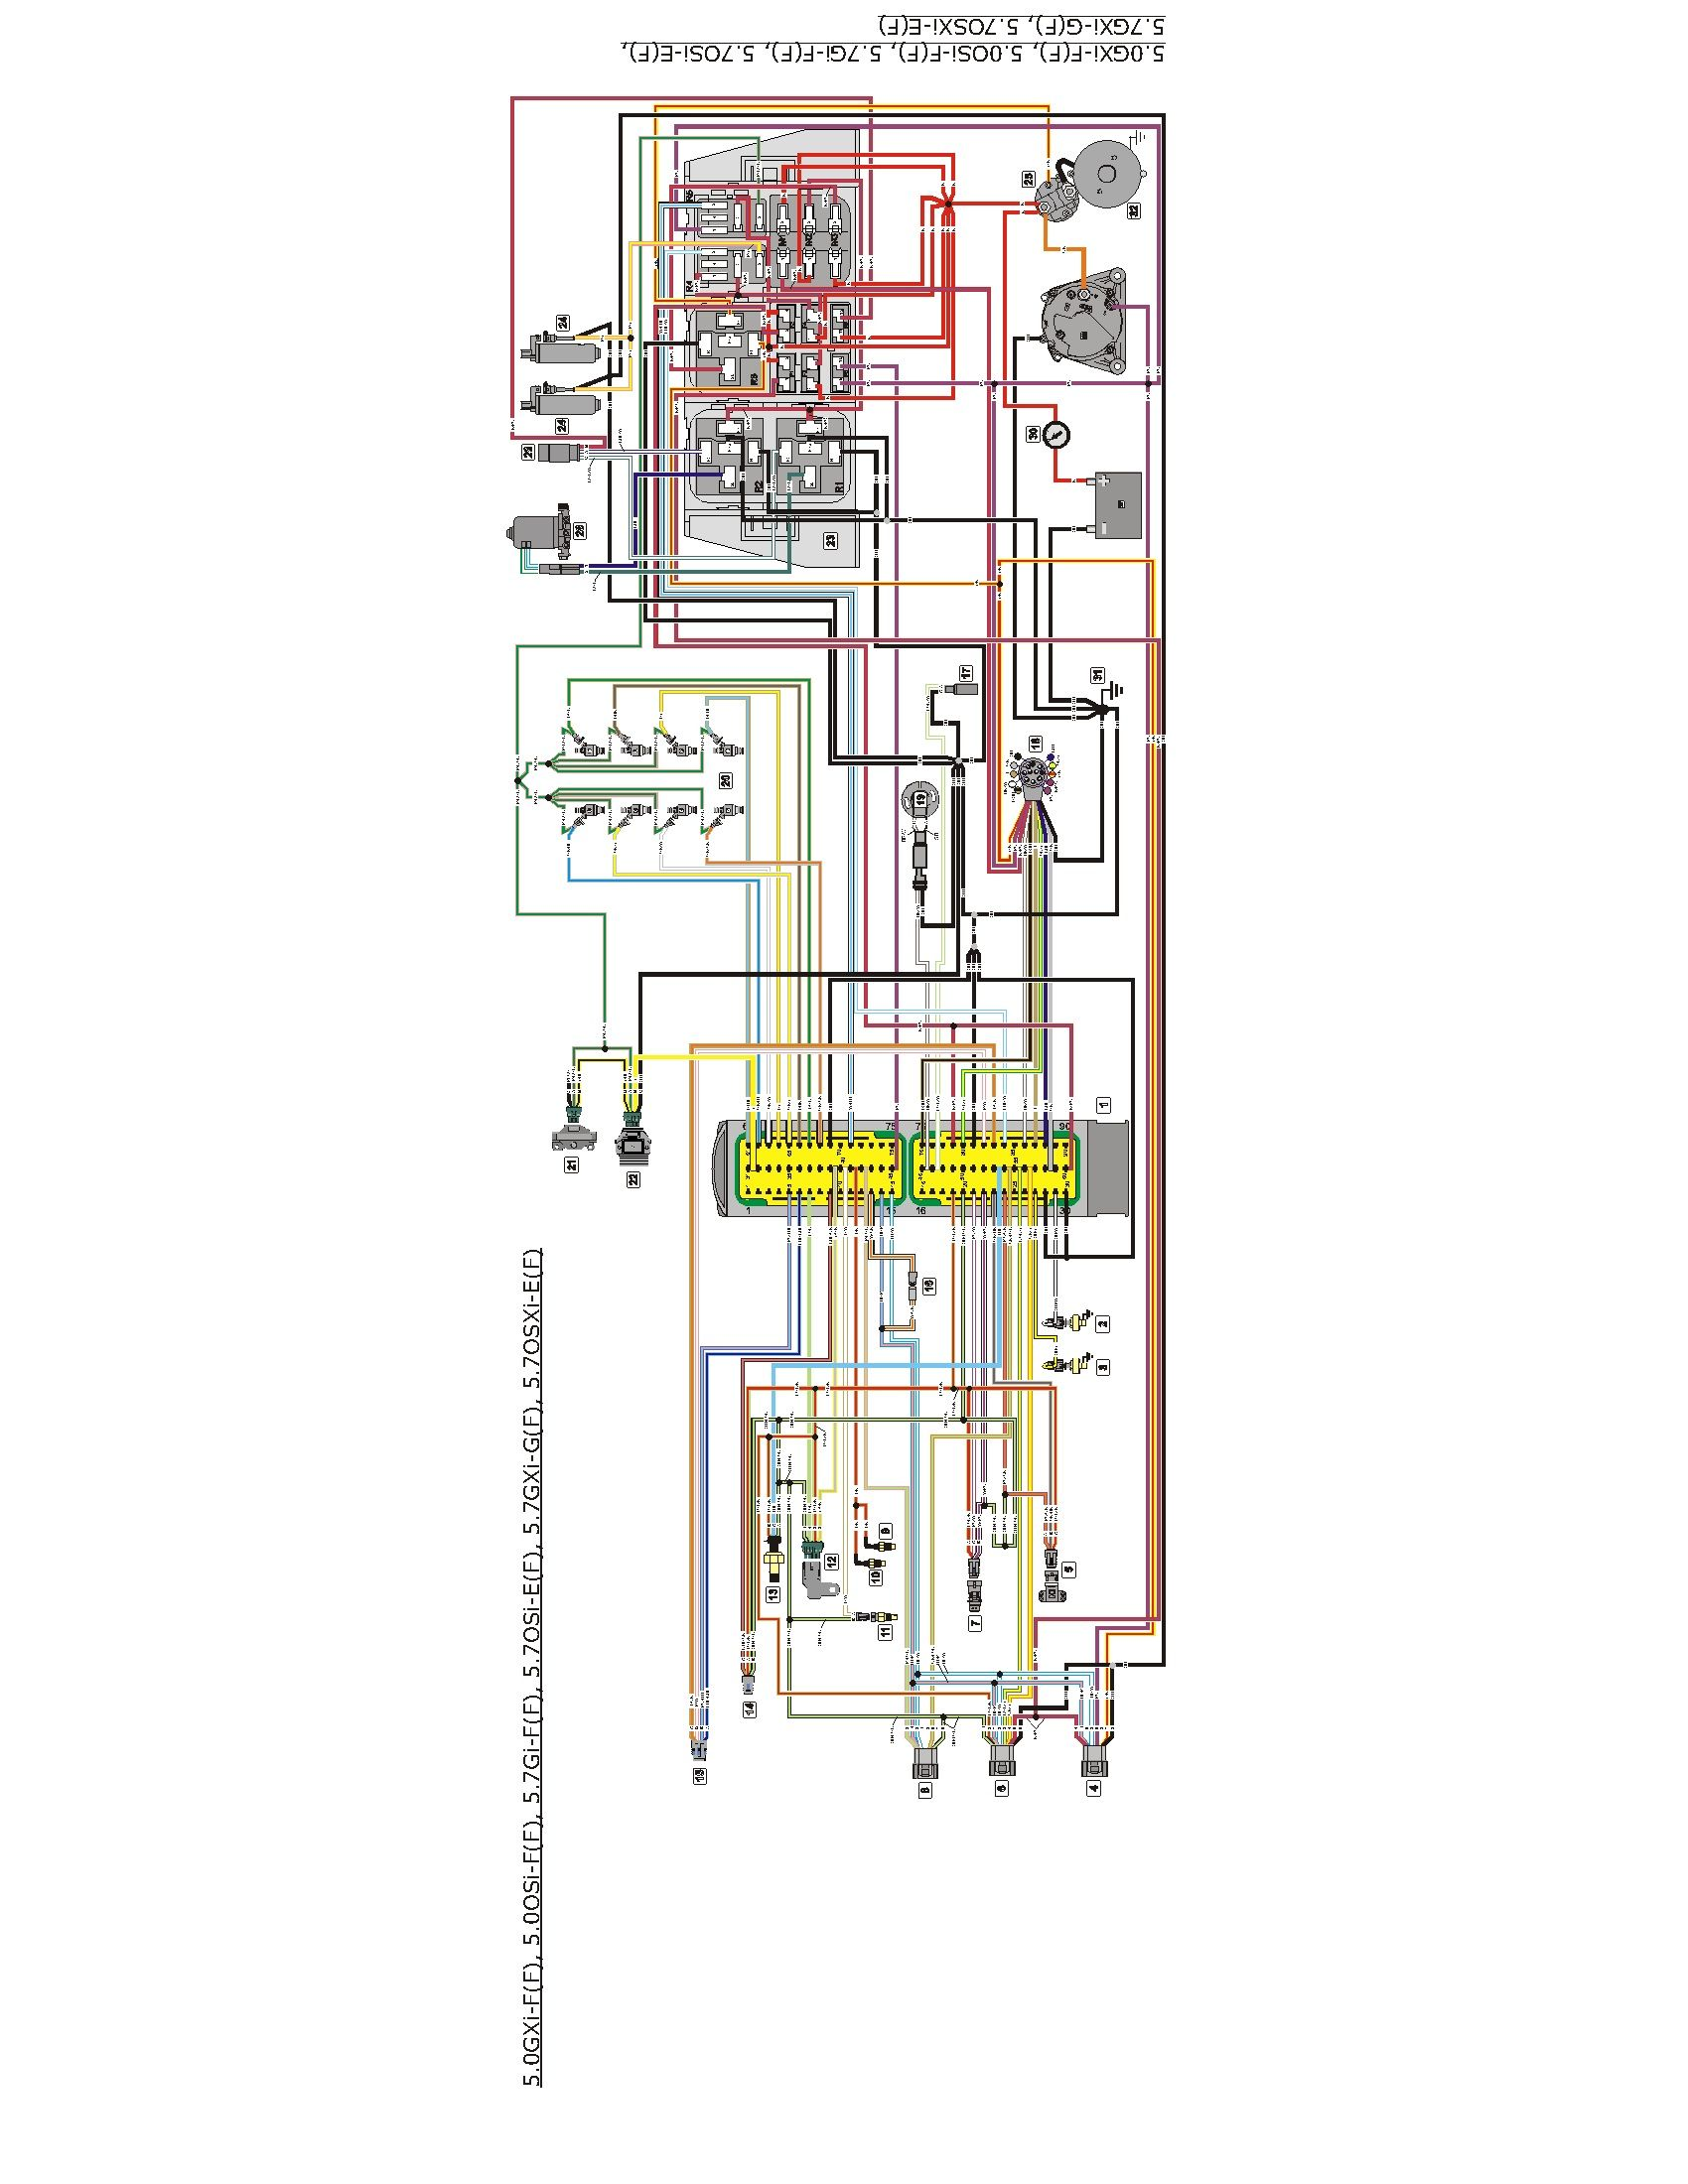 Volvo Penta 57 Engine Wiring Diagram Boat Pinterest 65 Hp Mercury Outboard Motor